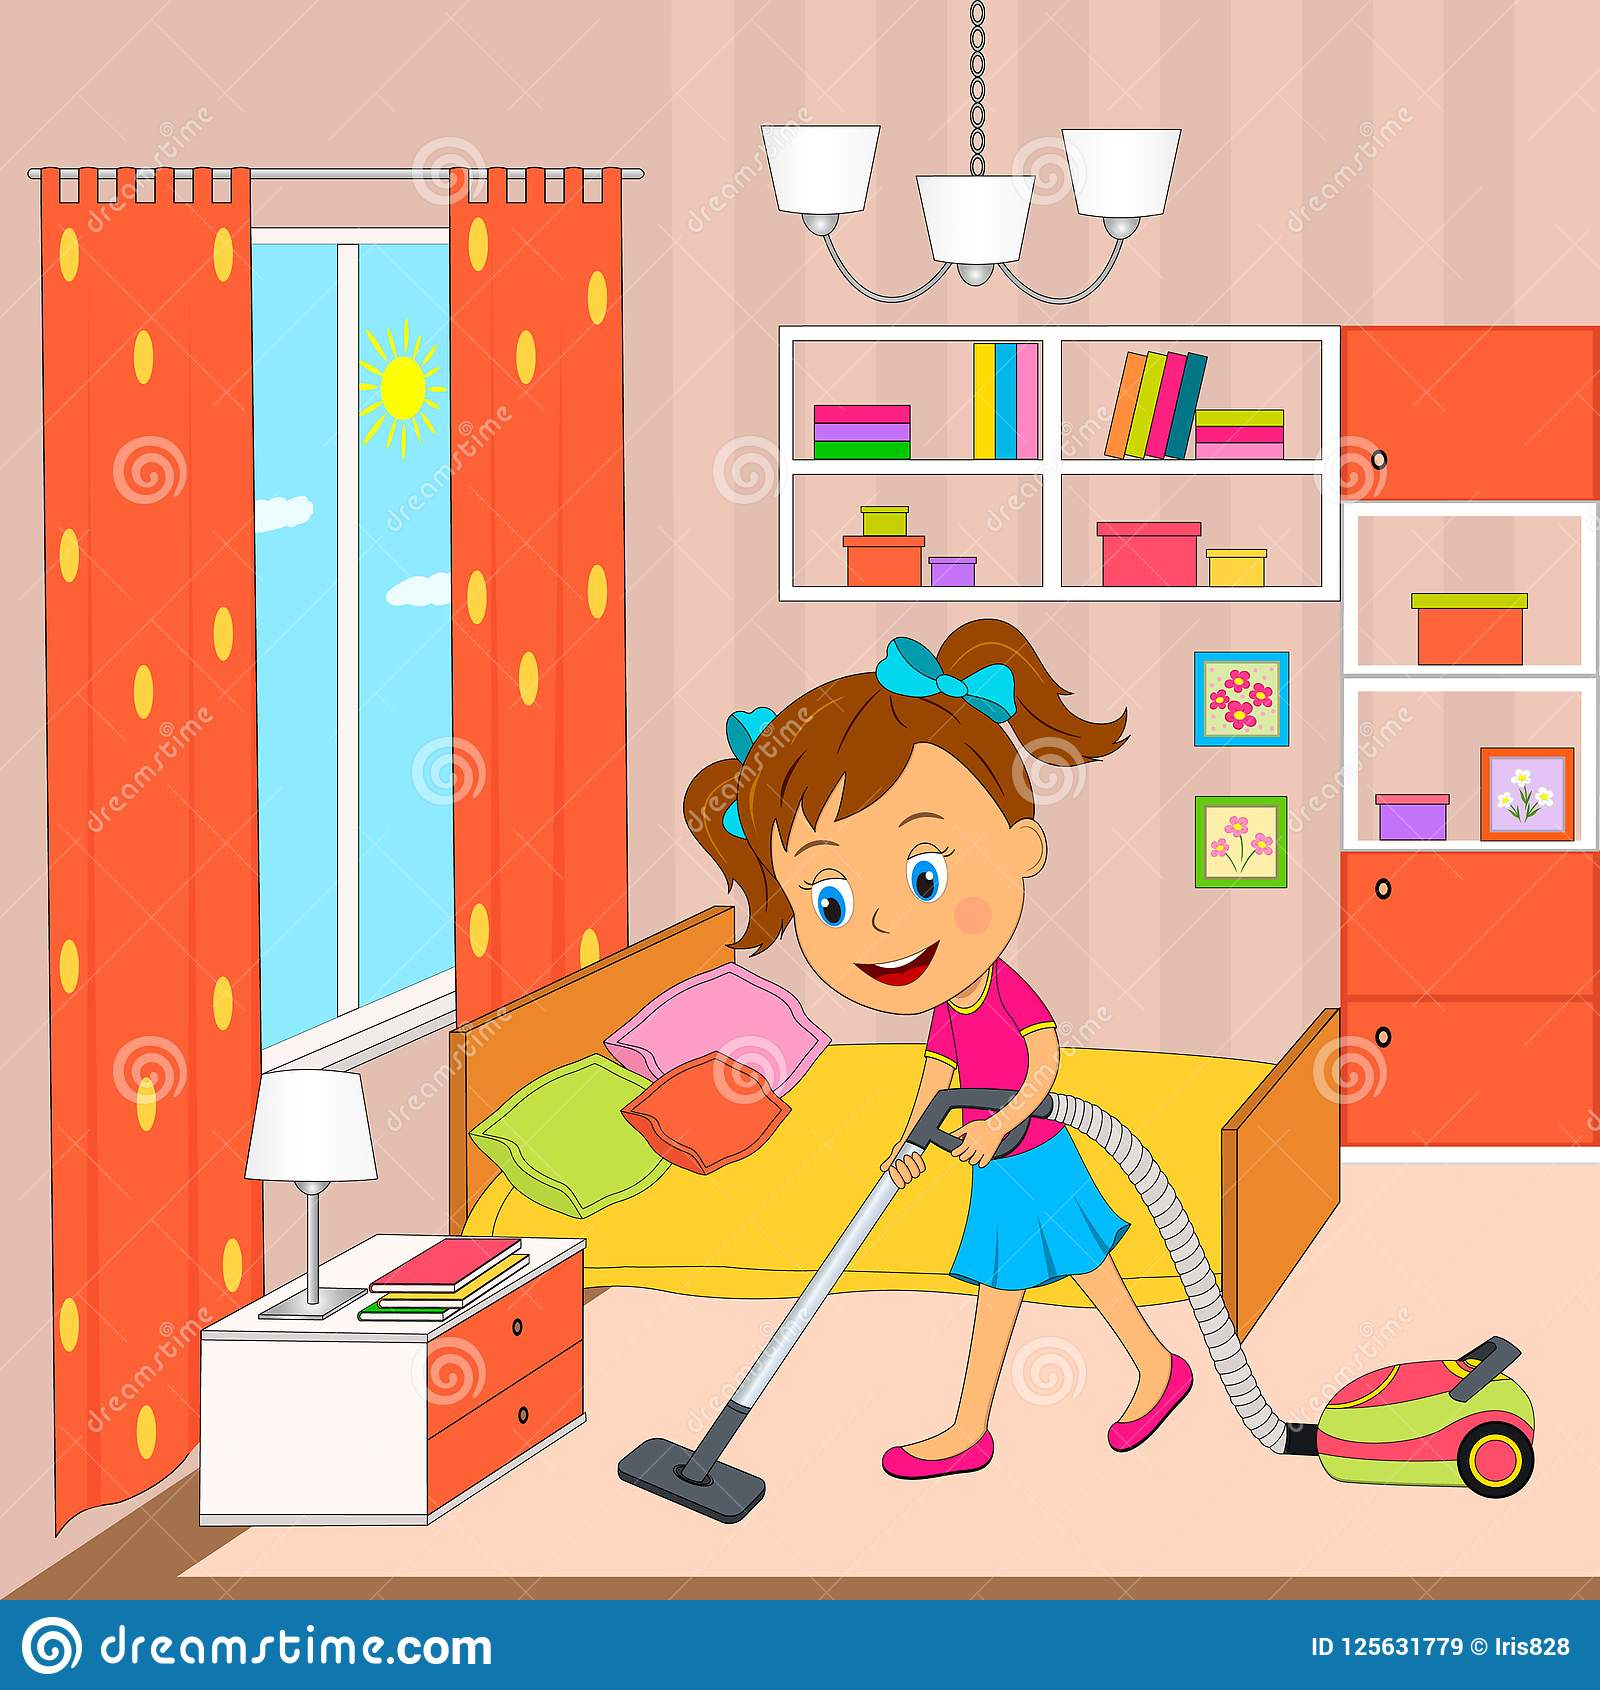 Room Clip Art: Cleaning Bedroom Stock Illustrations